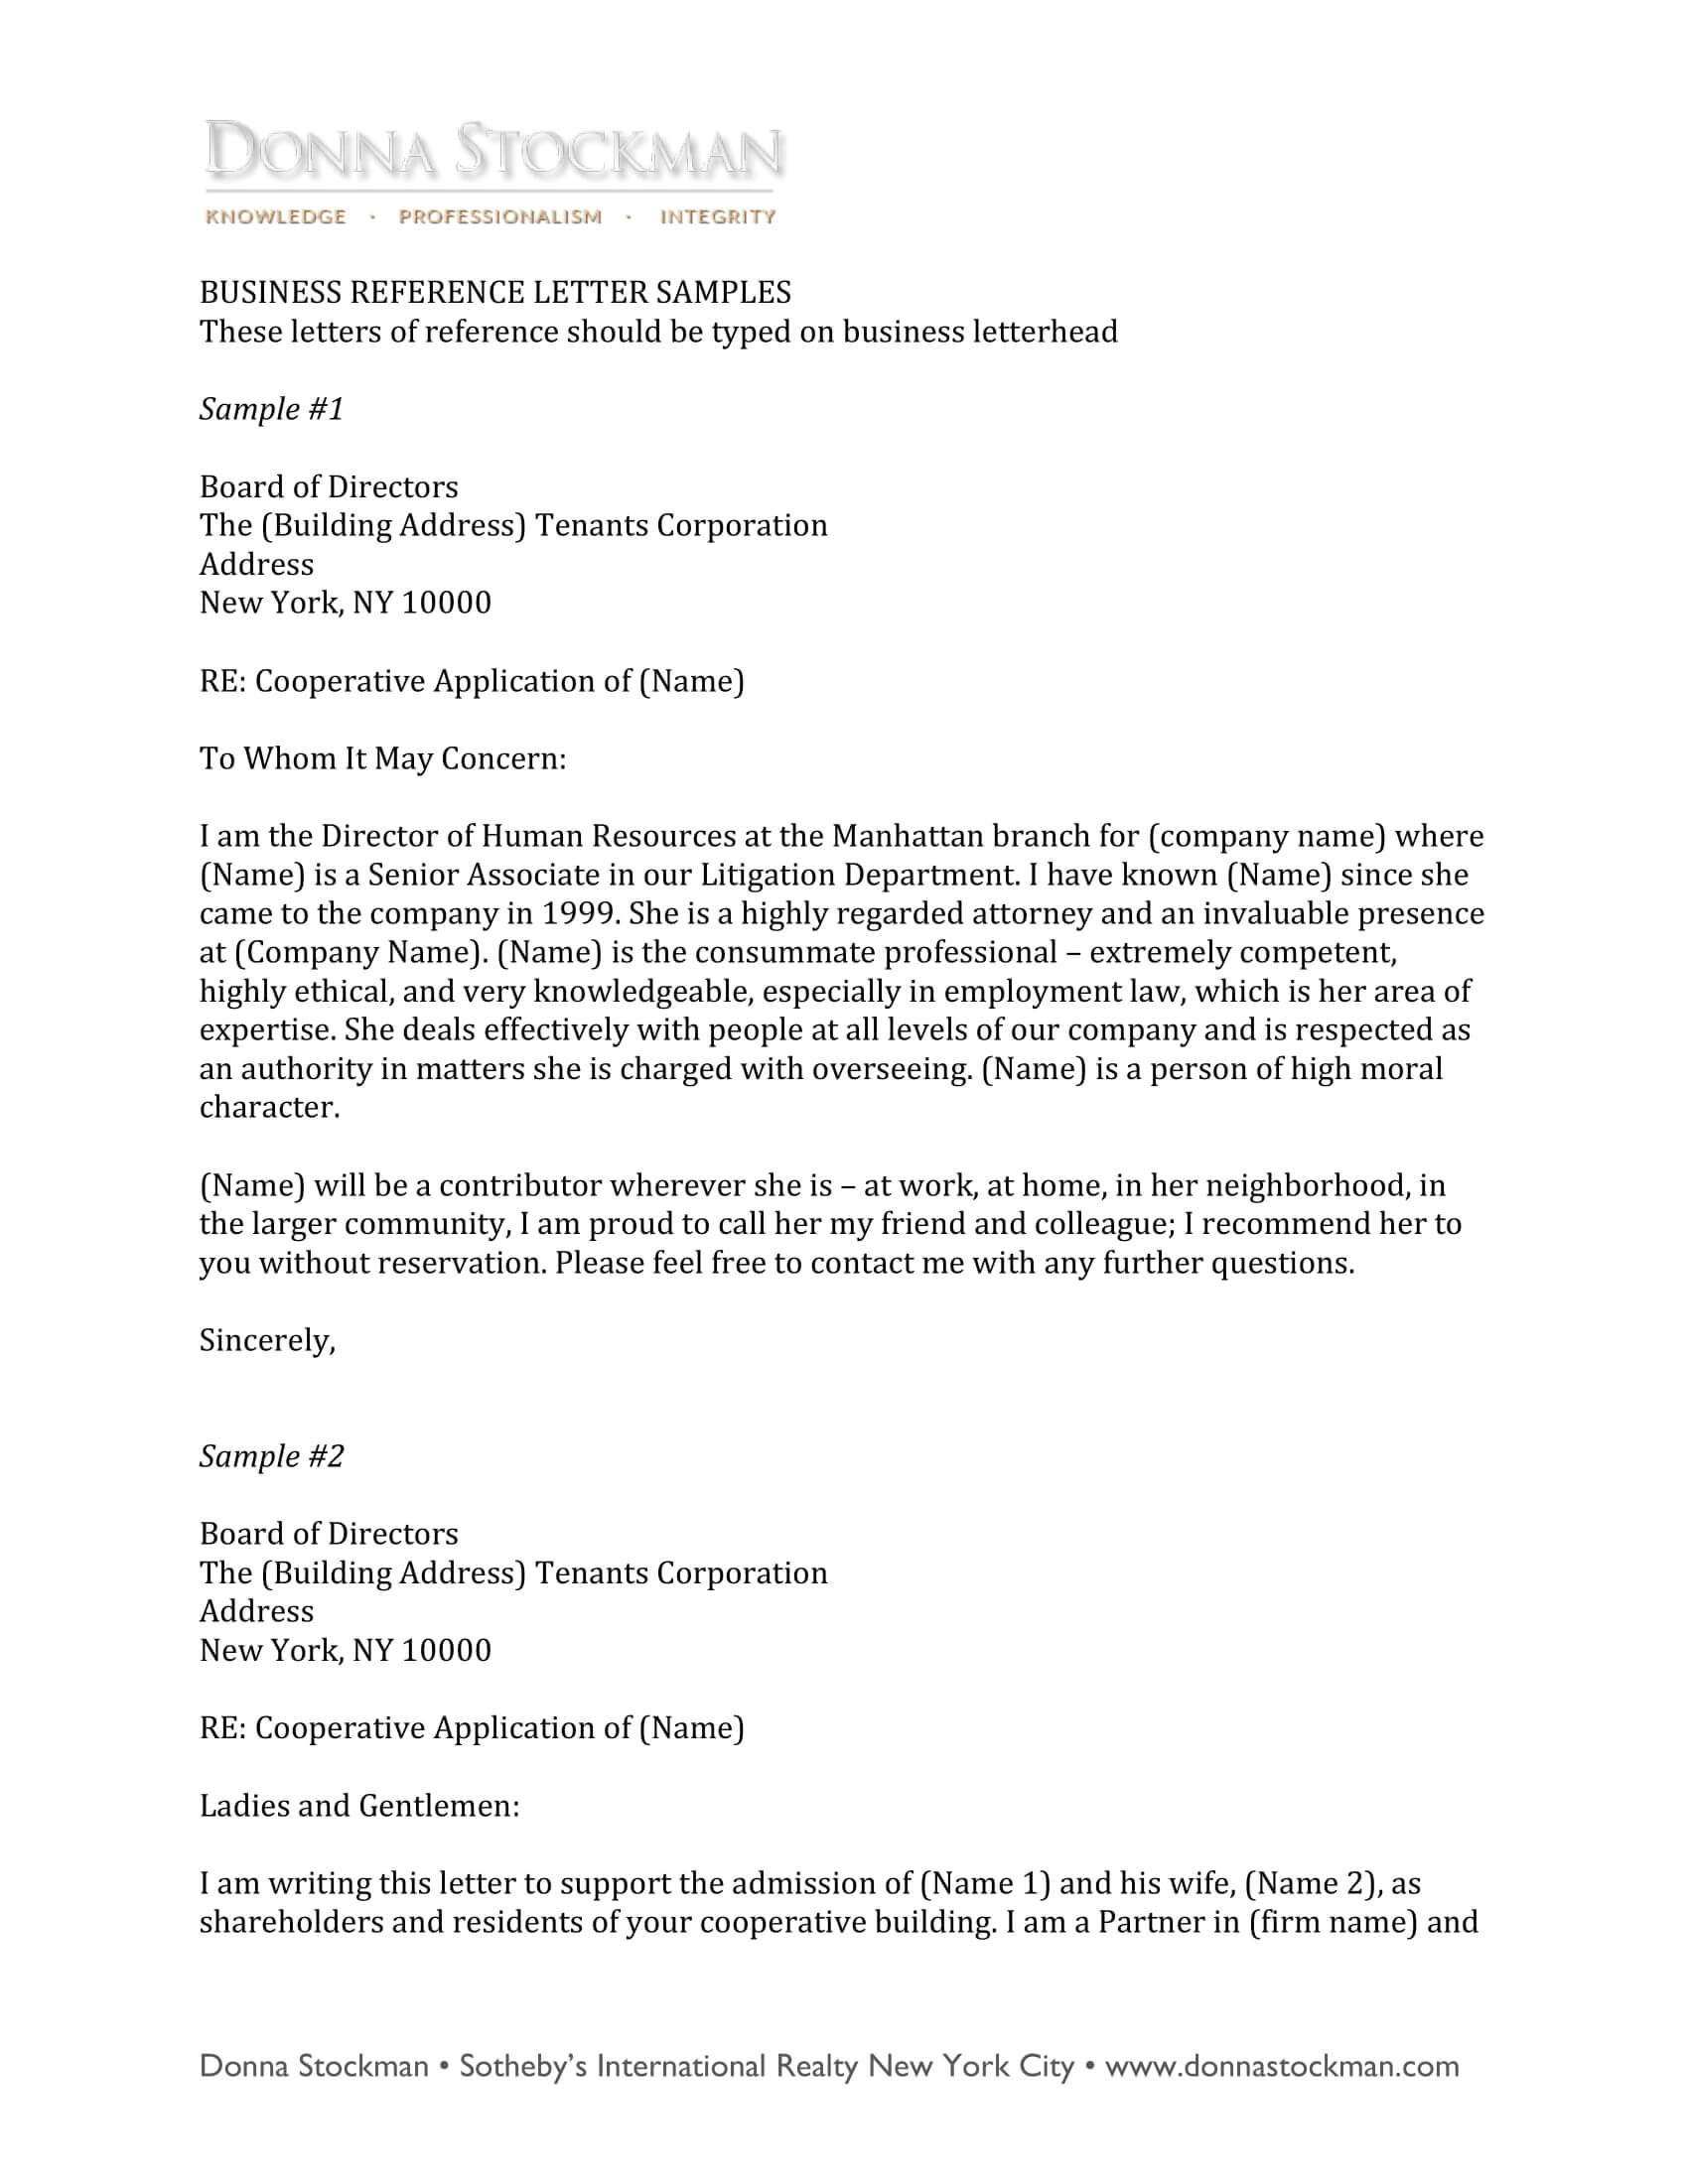 Refernce Letter Examples - Major.magdalene-Project in Business Reference Template Word